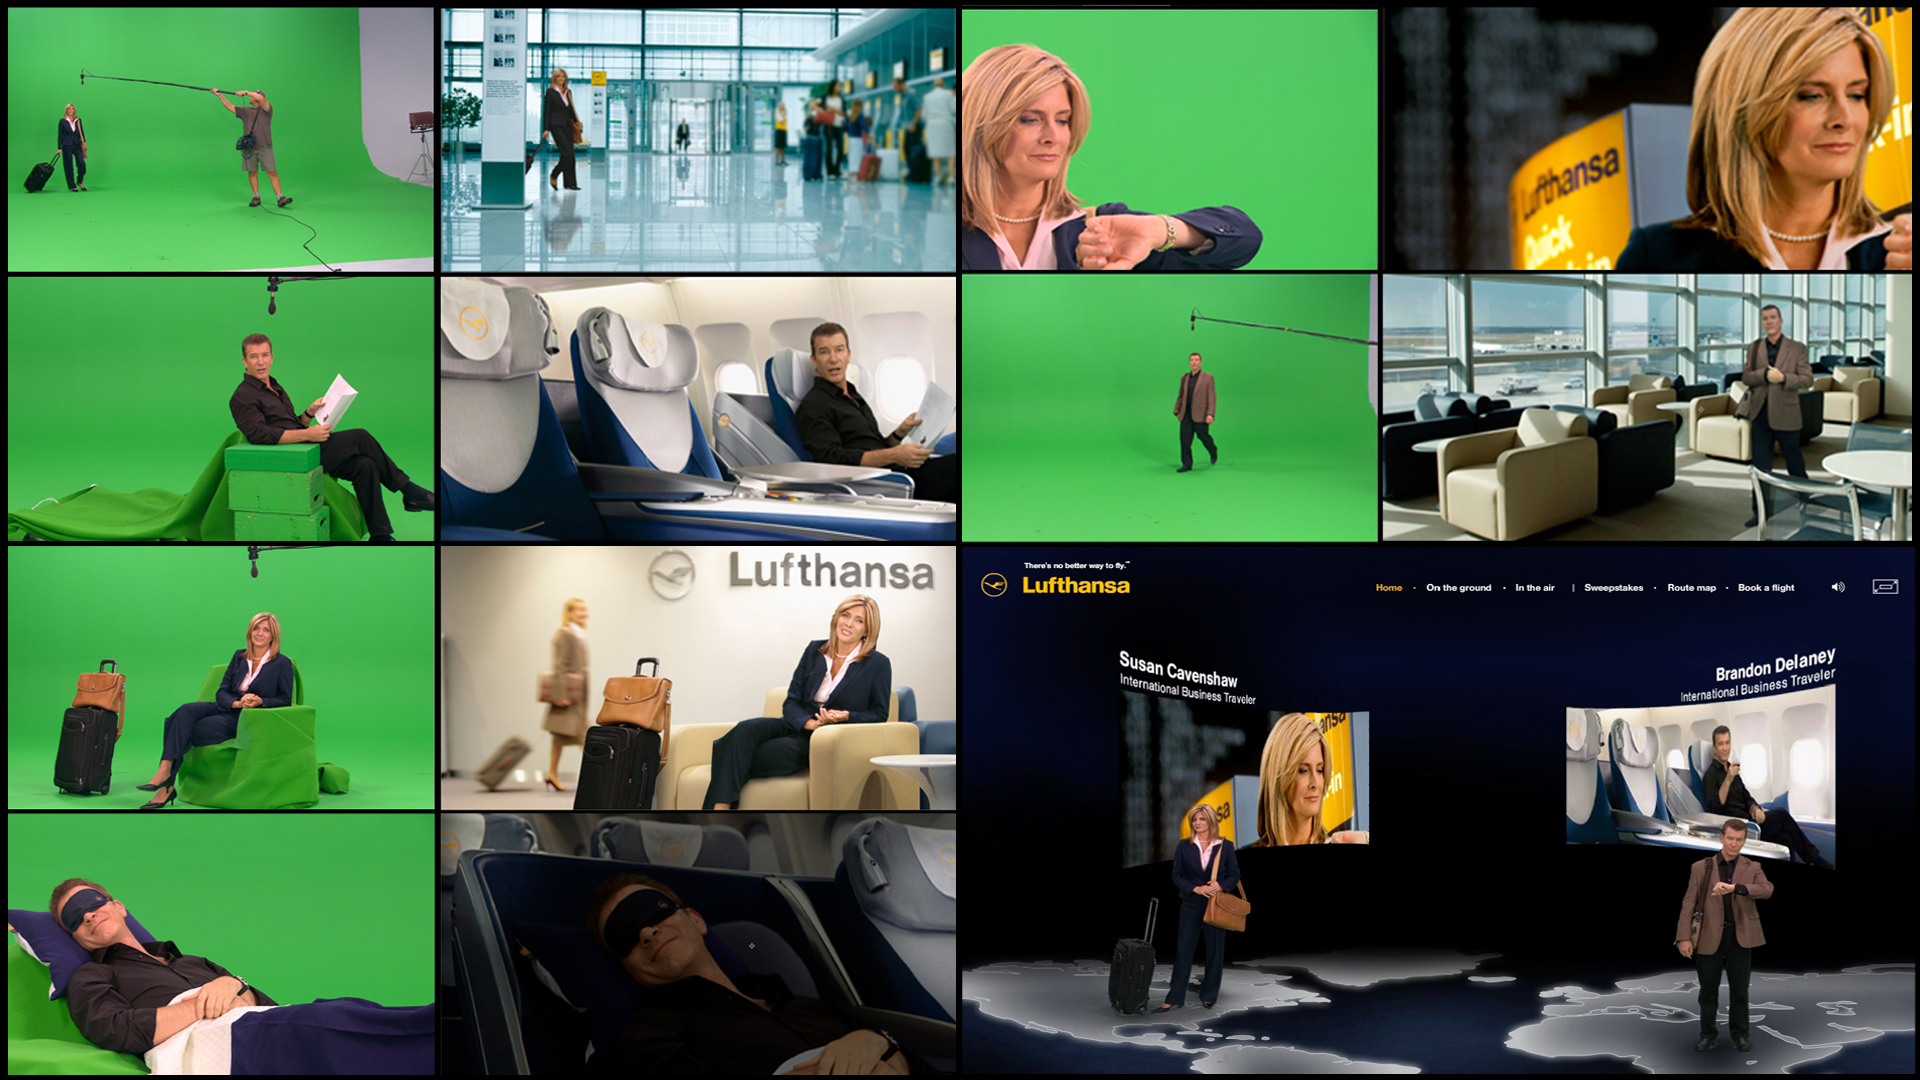 Lufthansa Green Screen.png